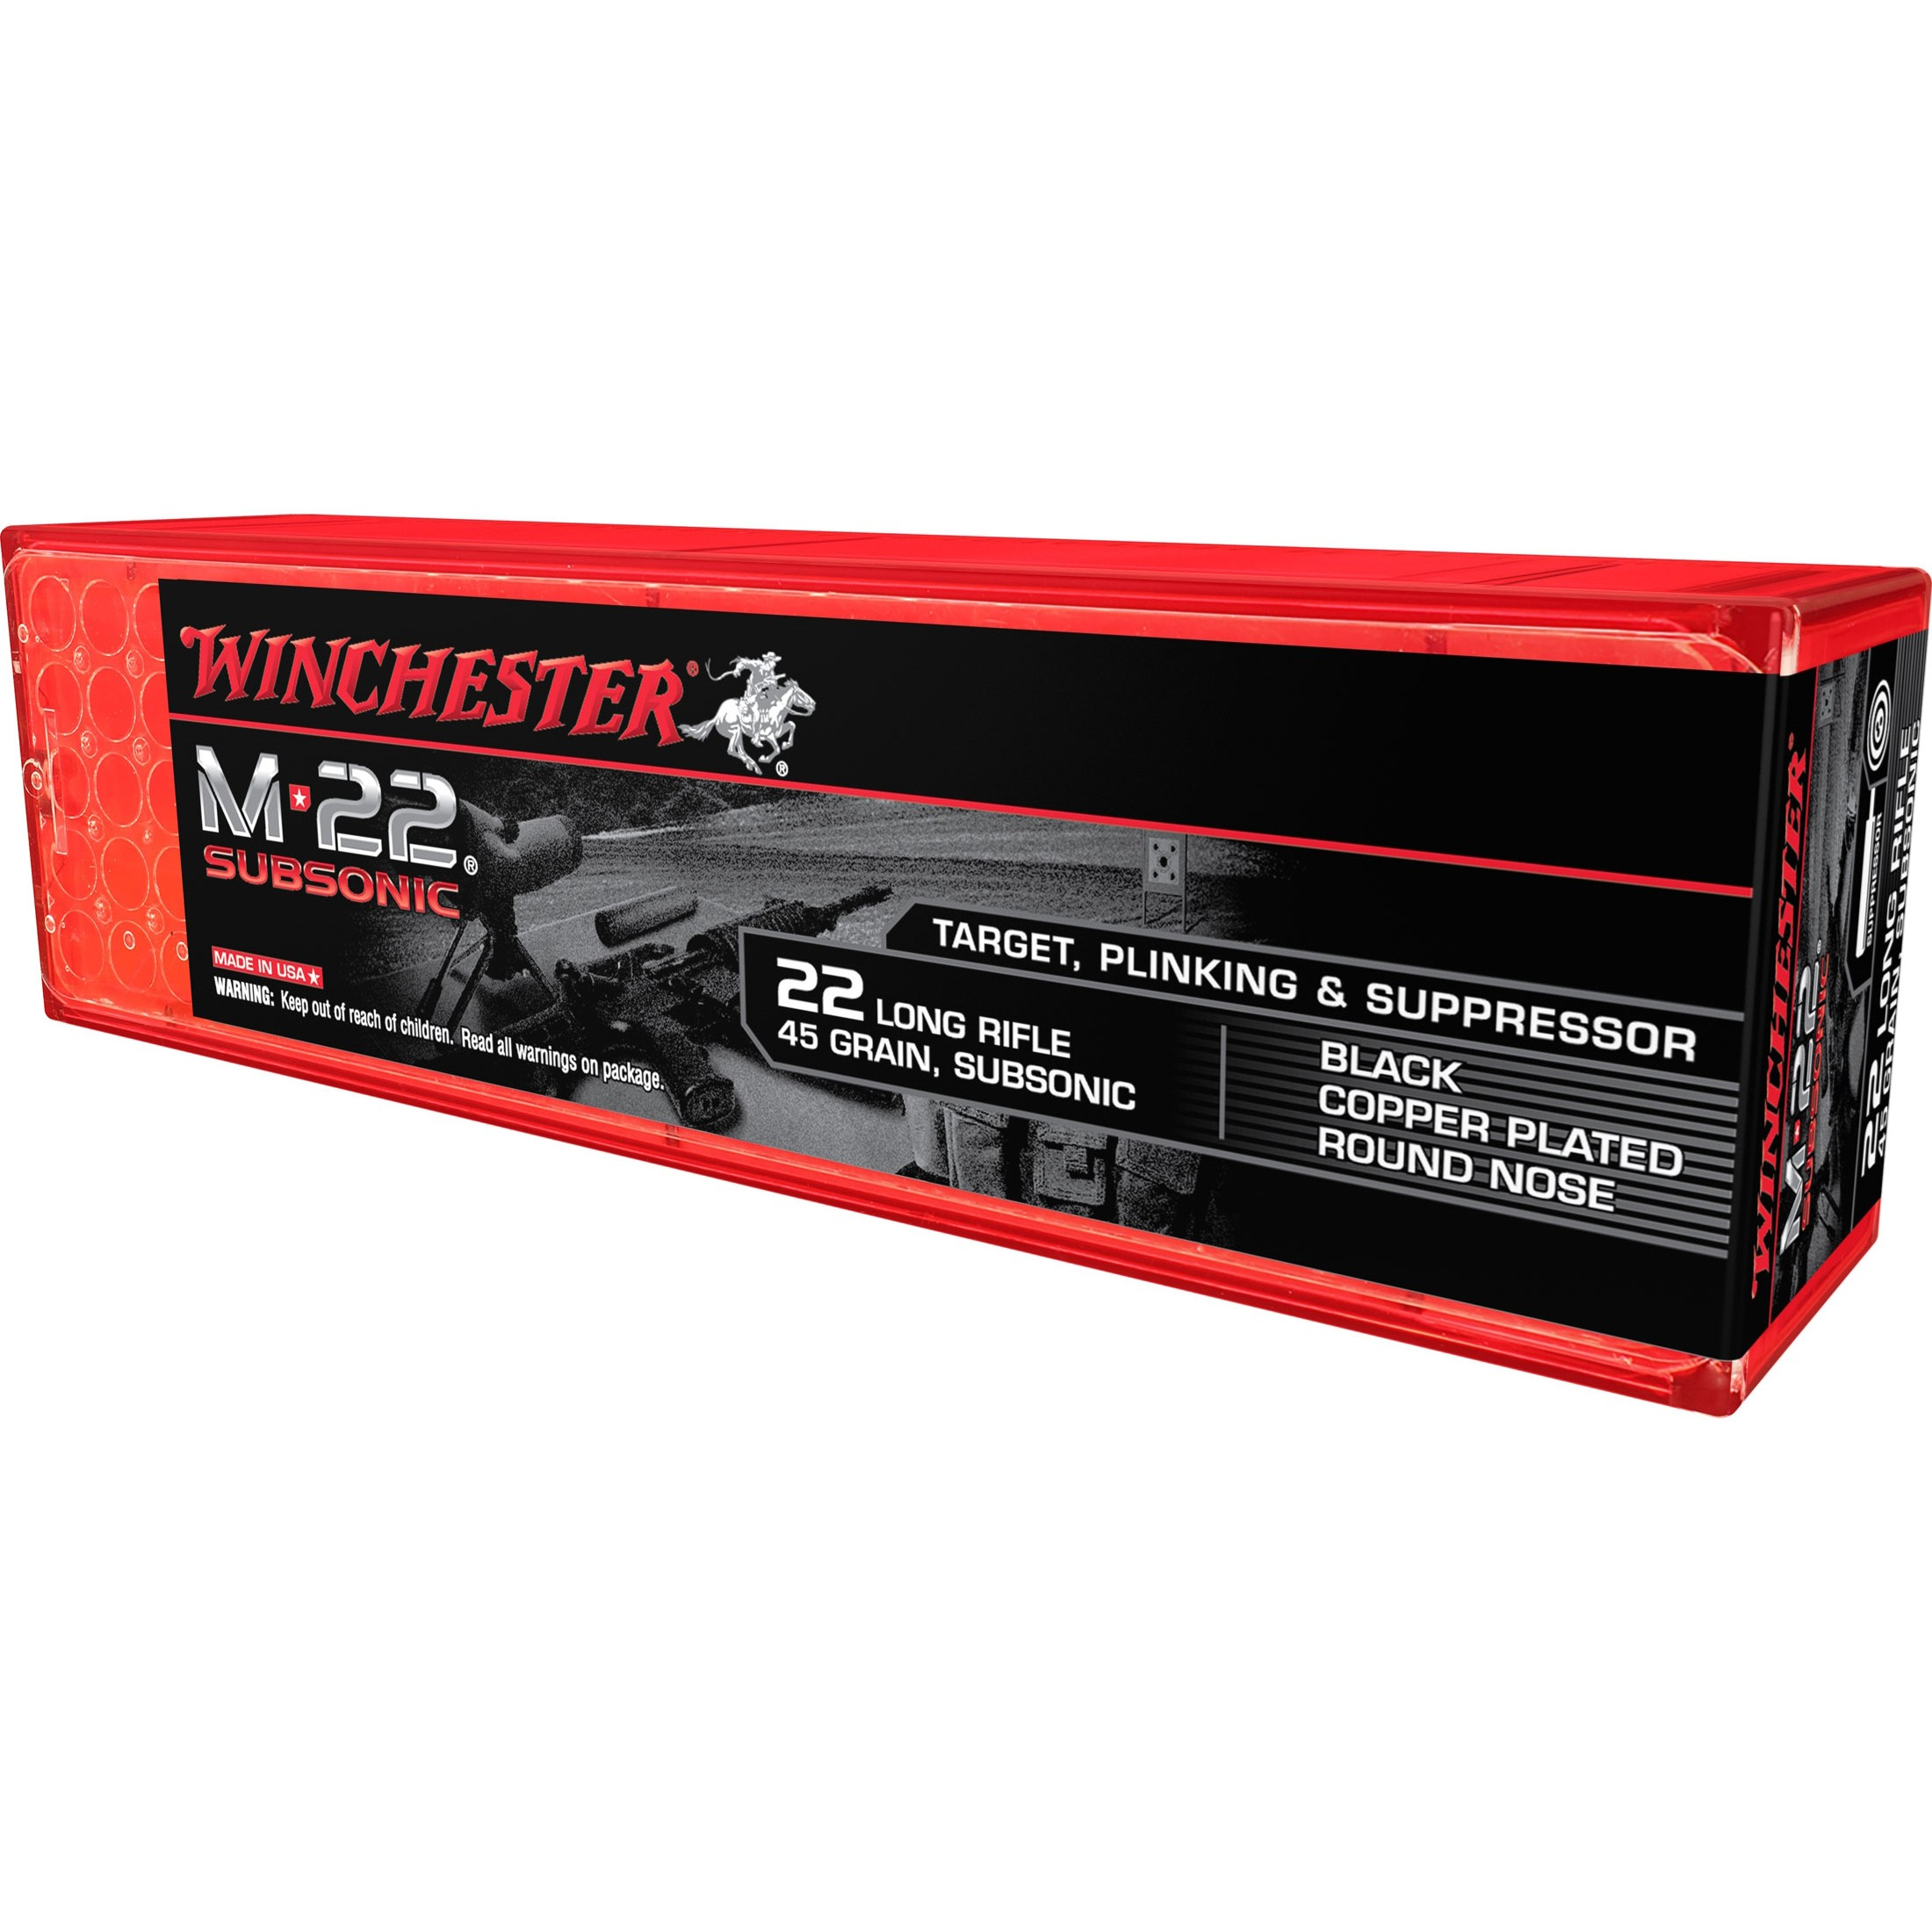 Winchester M22 Subsonic 22 Long Rifle 100rd Ammo